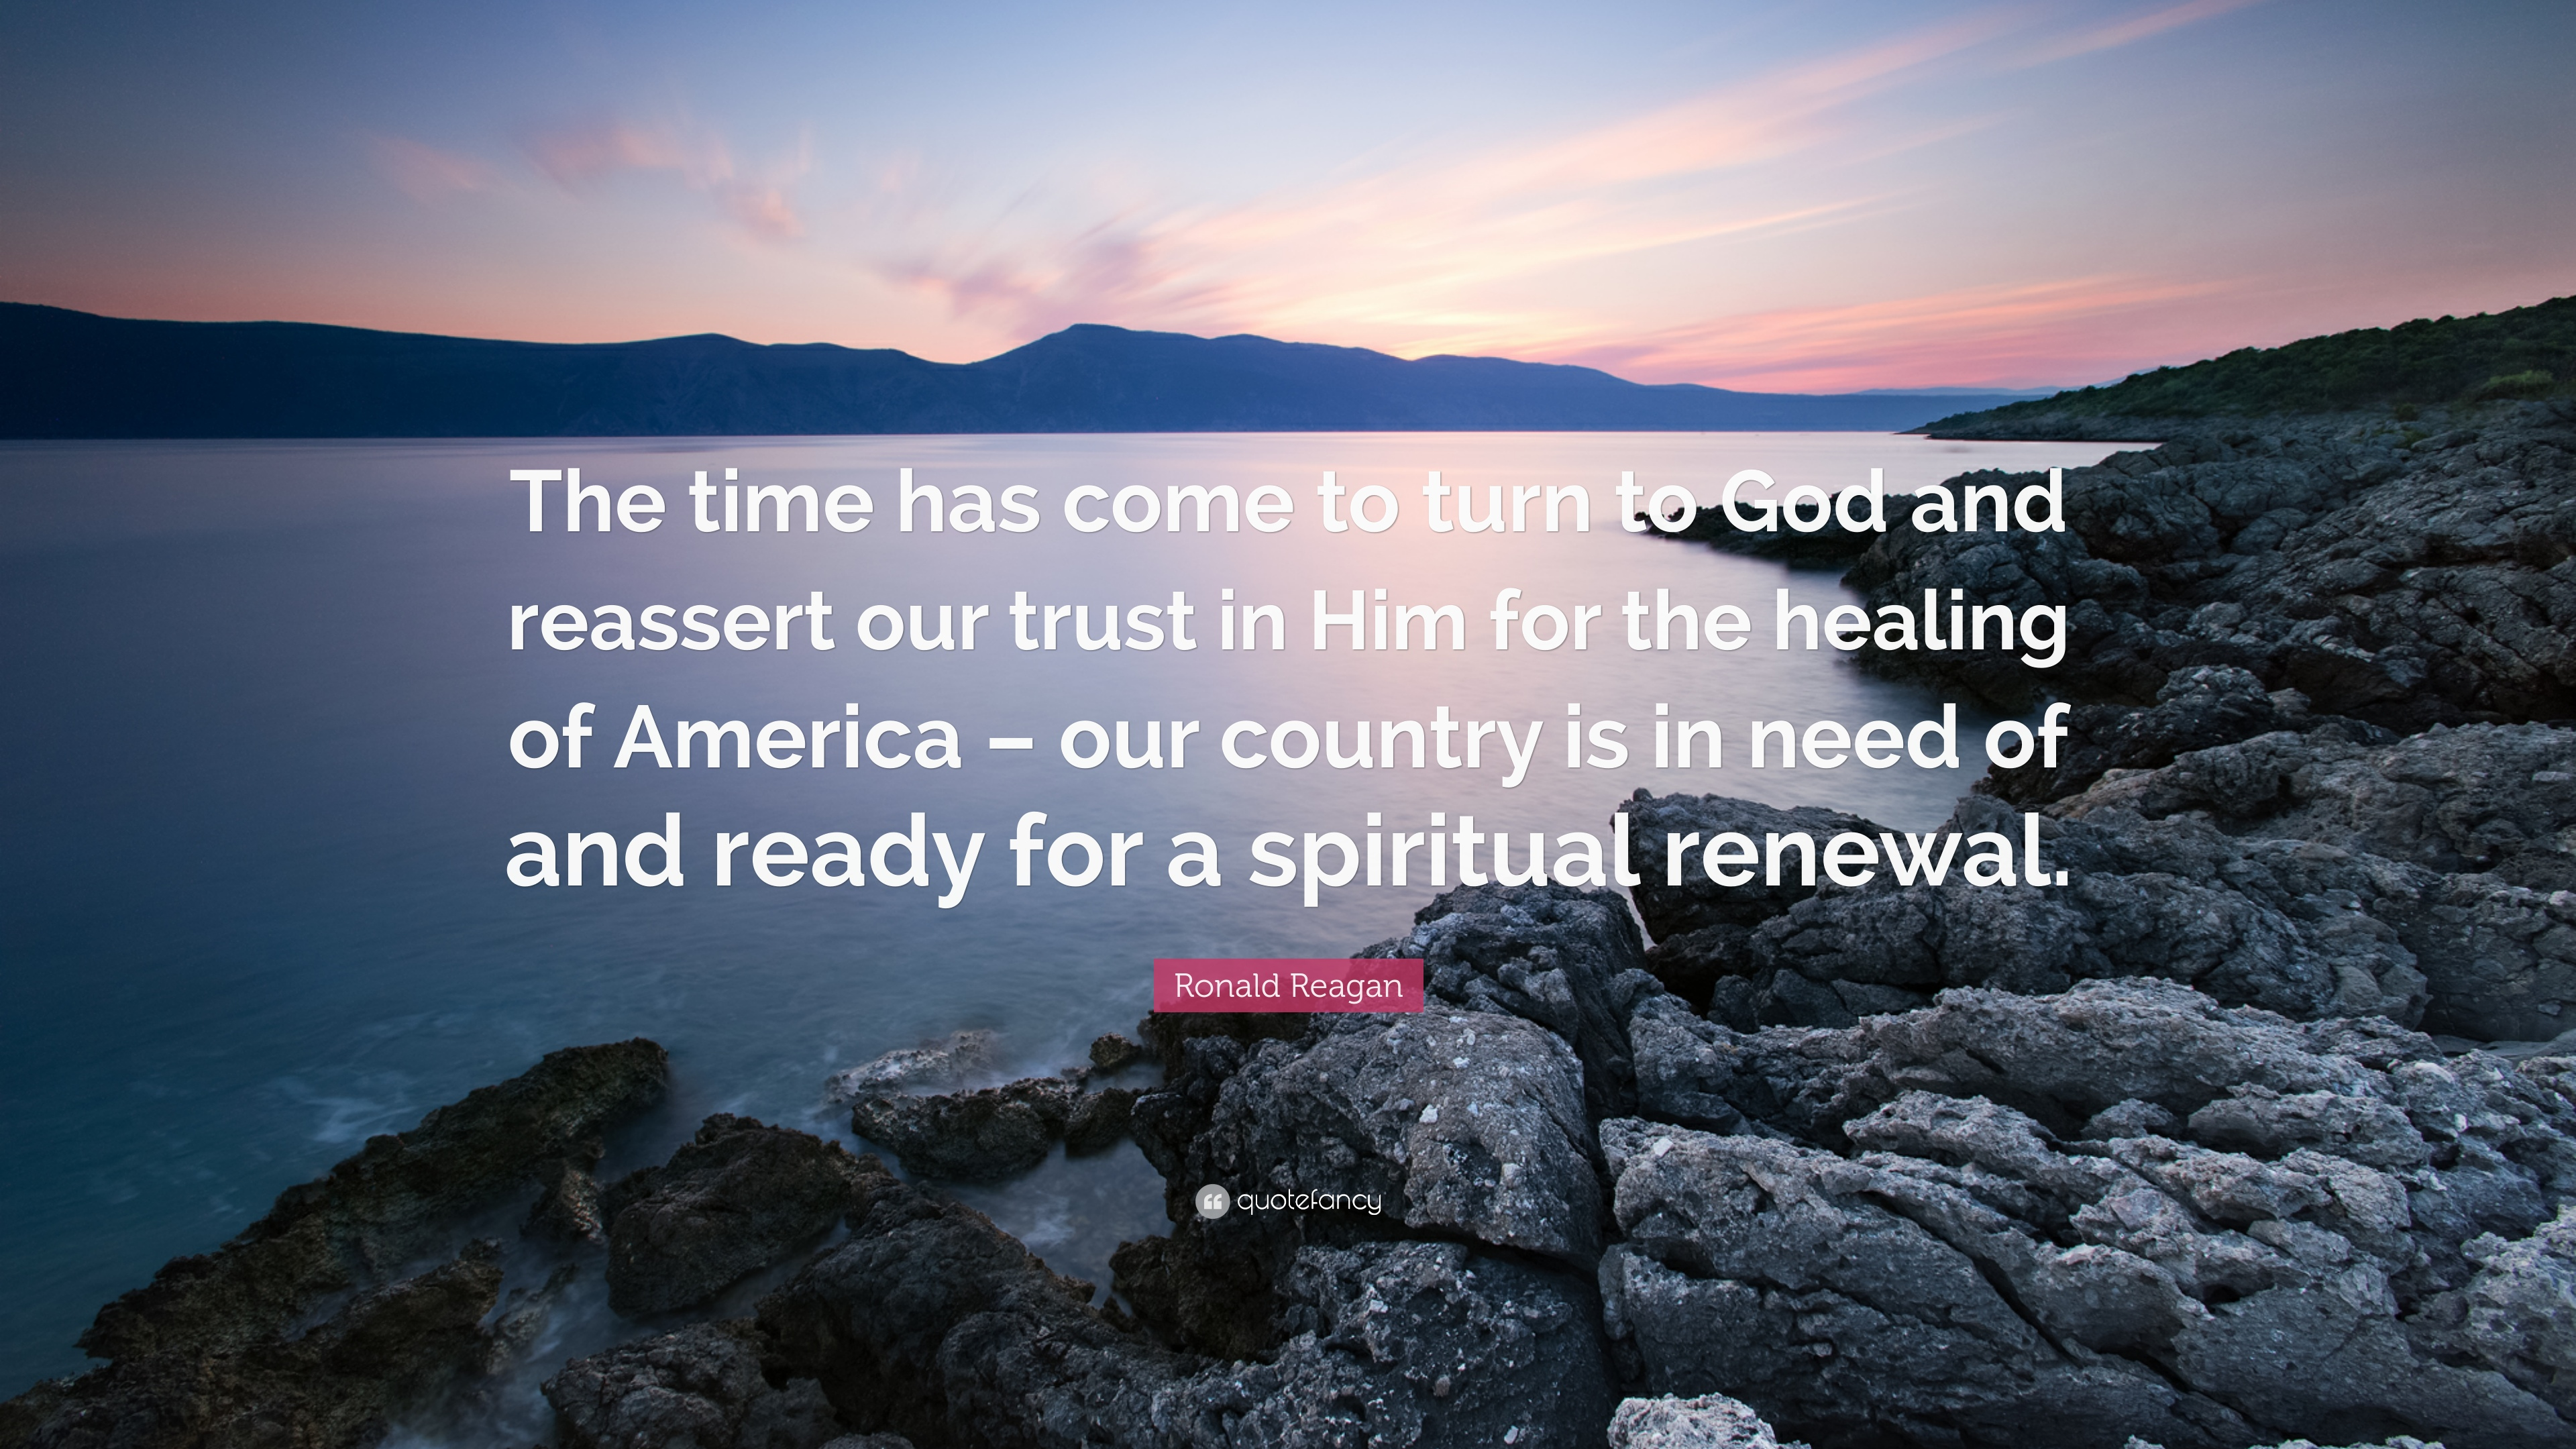 Ronald Reagan Quote The Time Has Come To Turn To God And Reassert